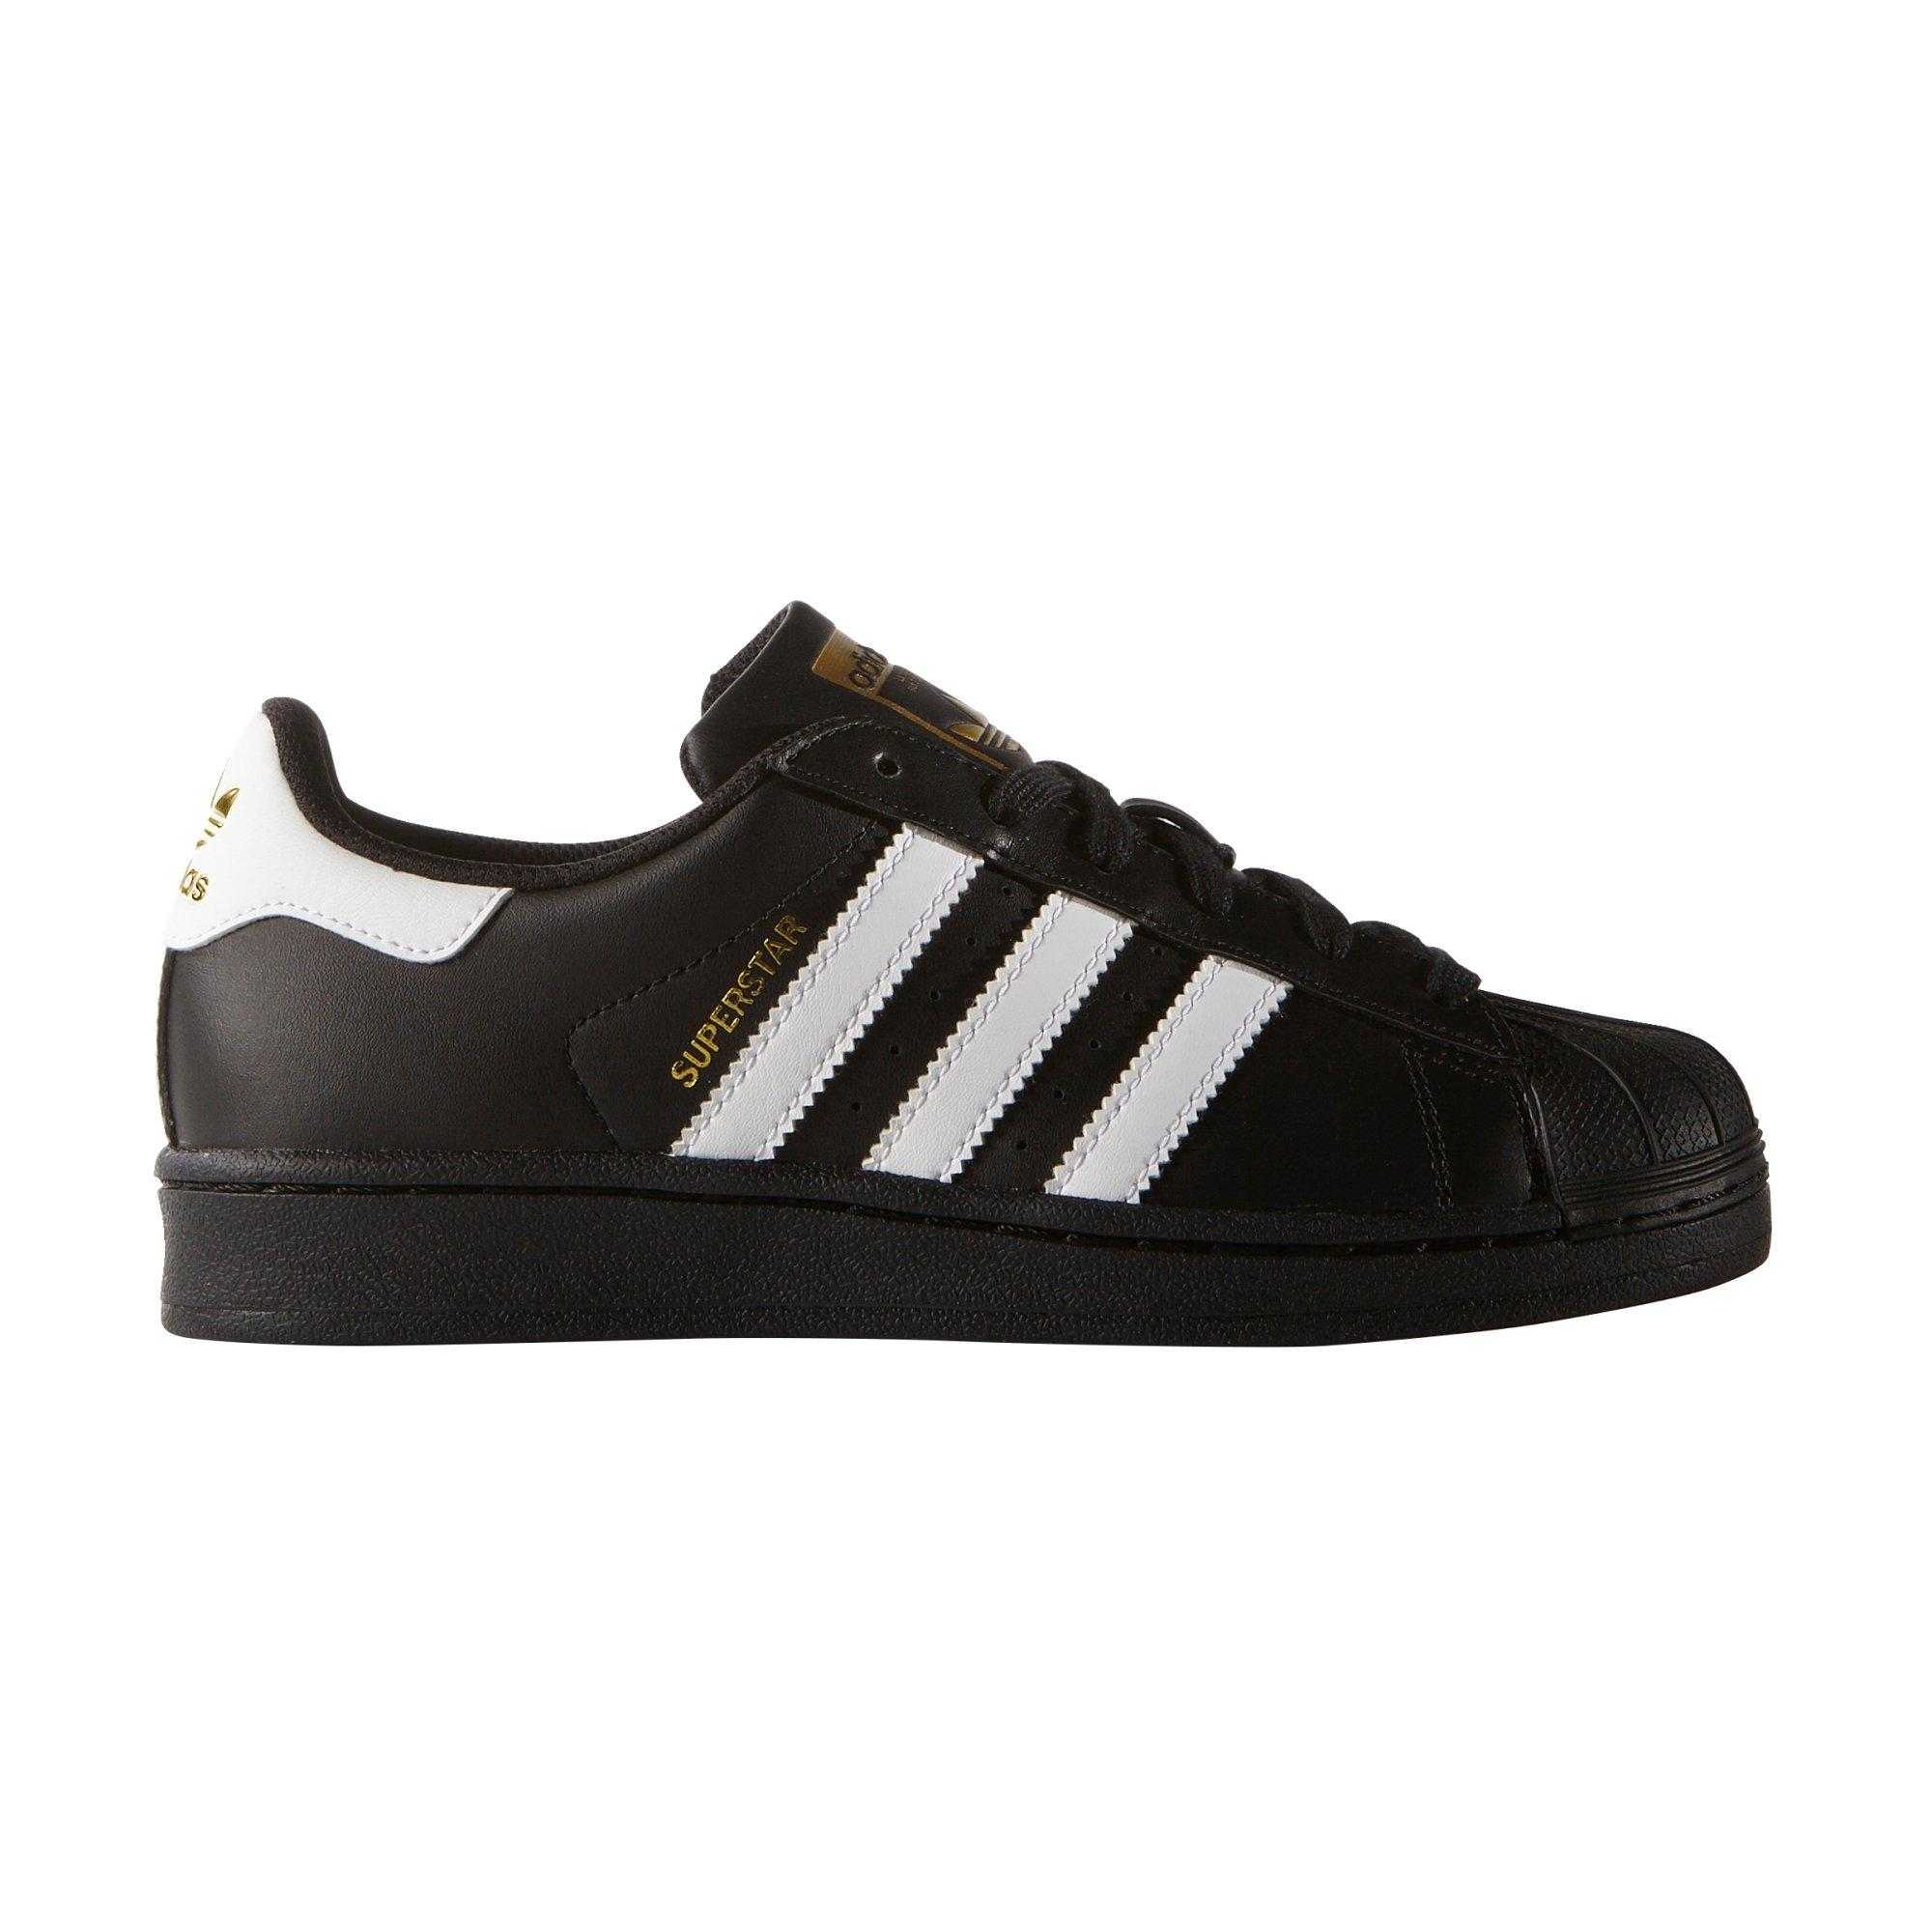 Sale Price$70.00. 4.6 out of 5 stars. Read reviews. (8). adidas Superstar  Grade School Kids\u0027 Casual Shoes